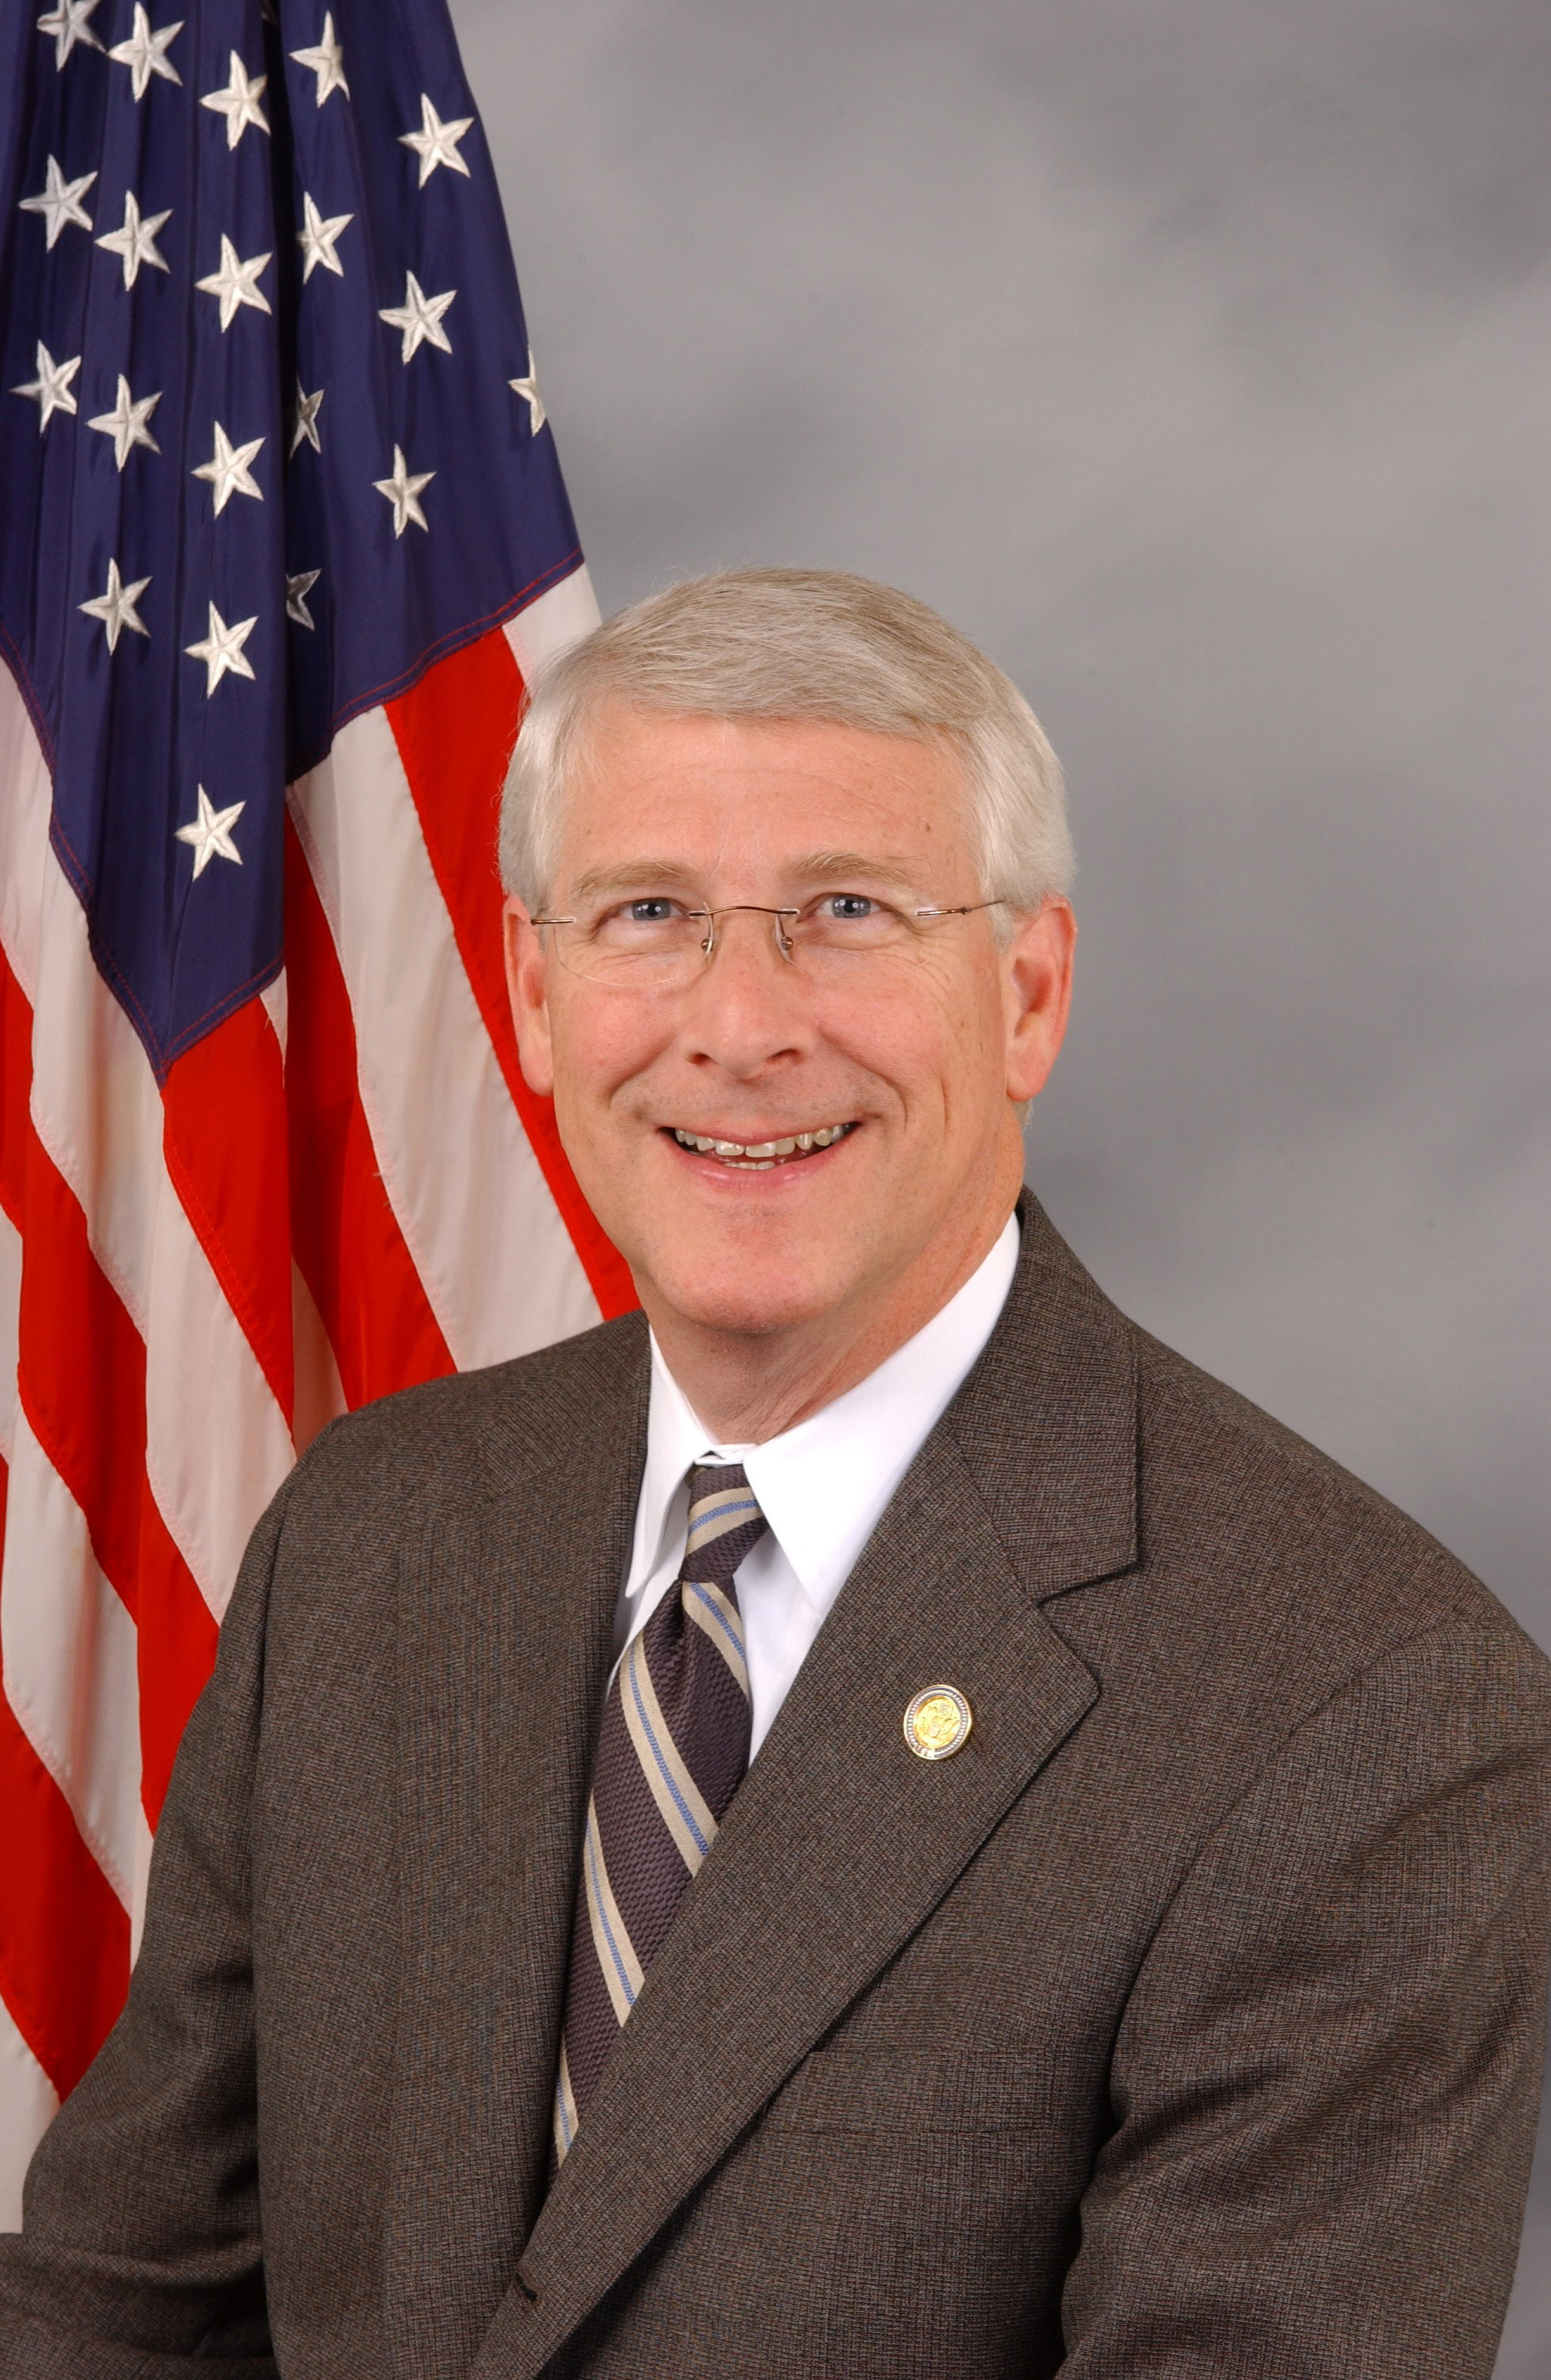 Roger Wicker Roger Wicker Wikipedia the free encyclopedia